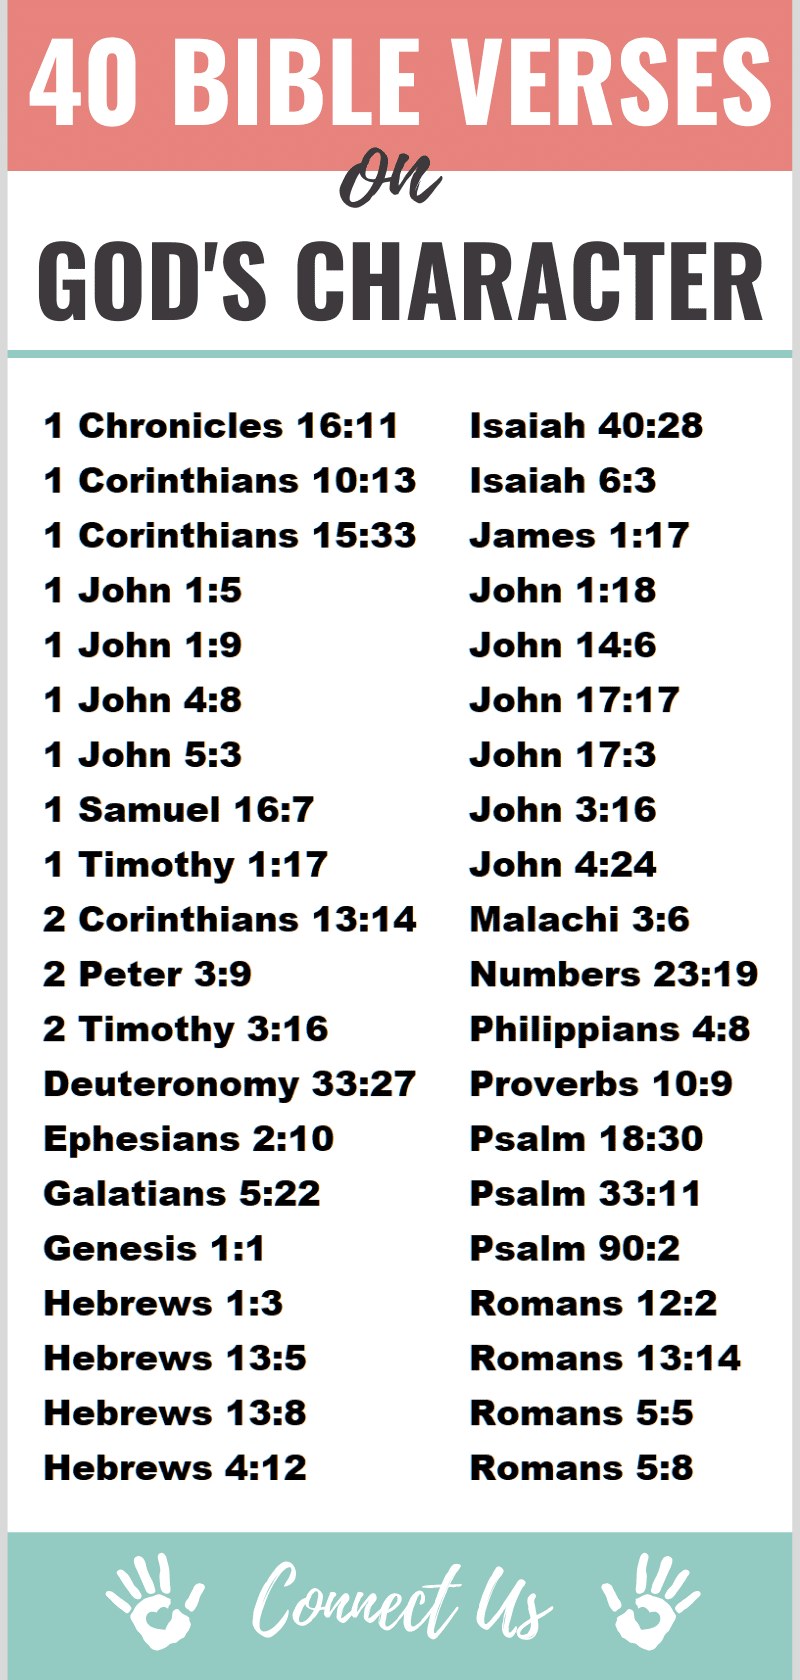 Bible Verses on God's Character